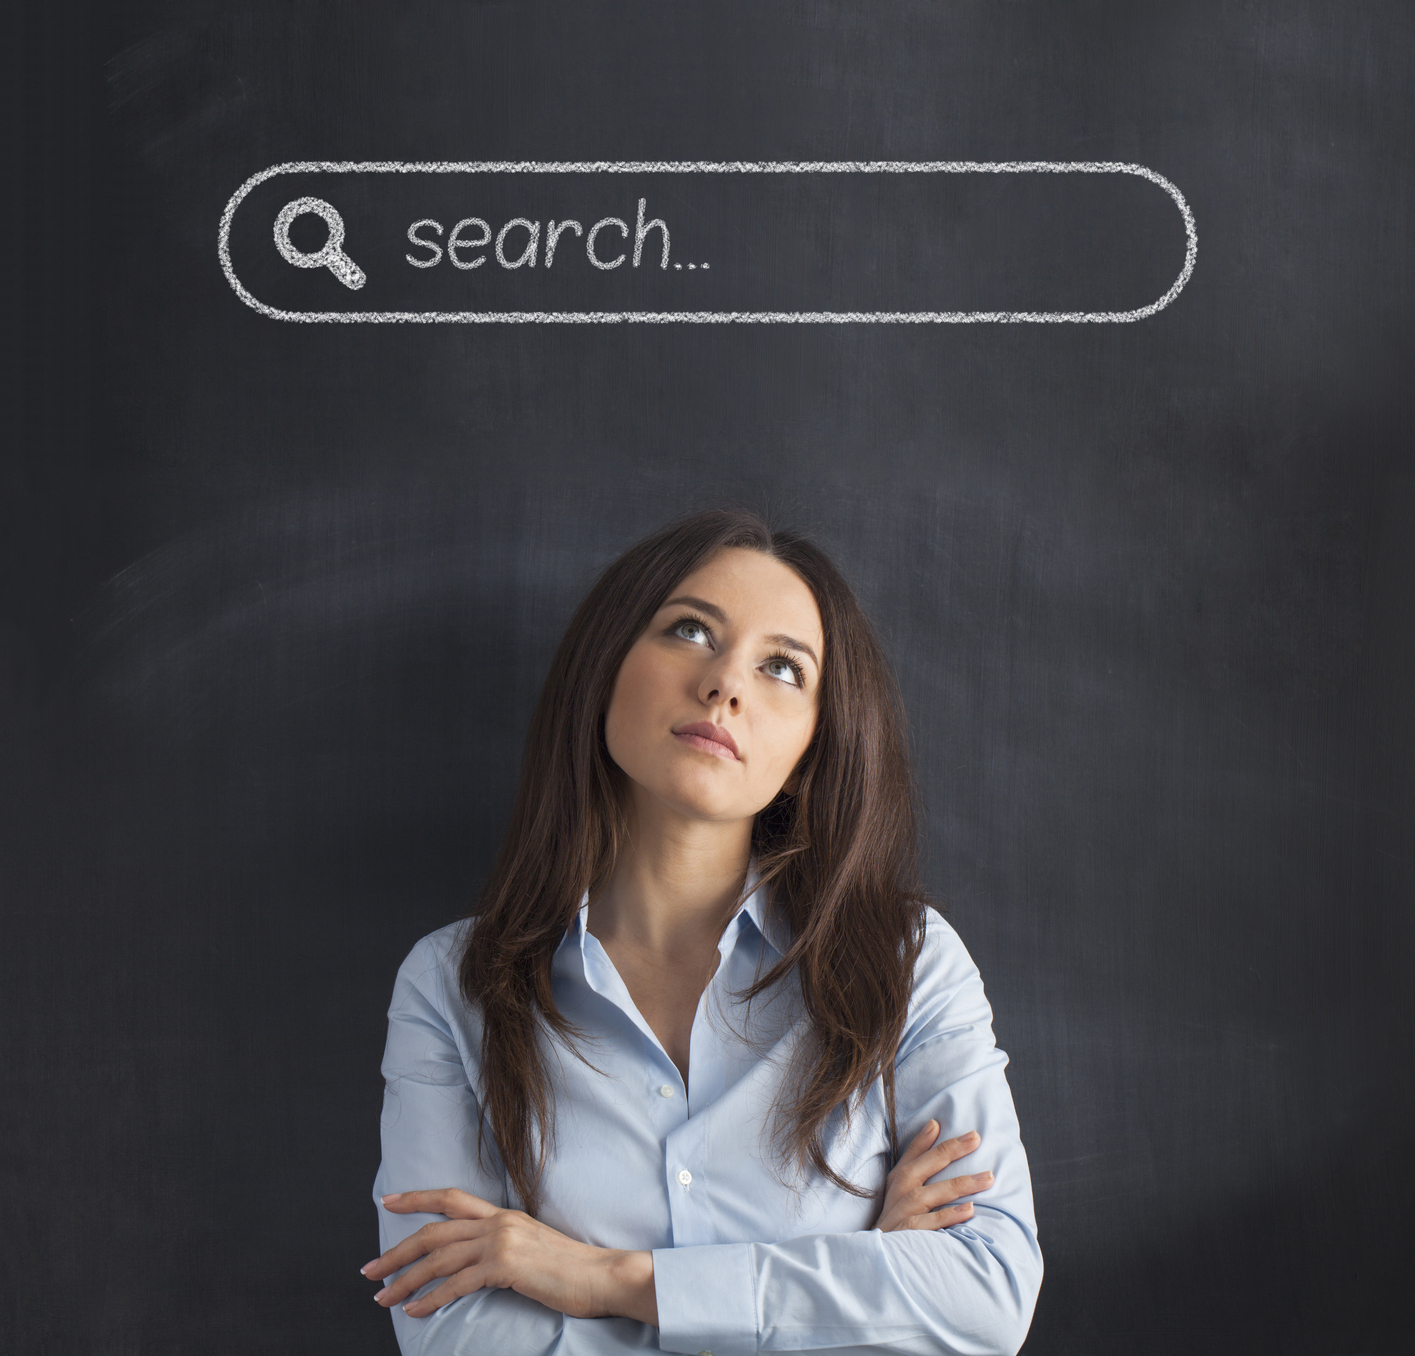 Businesswoman standing on blackboard under the search bar